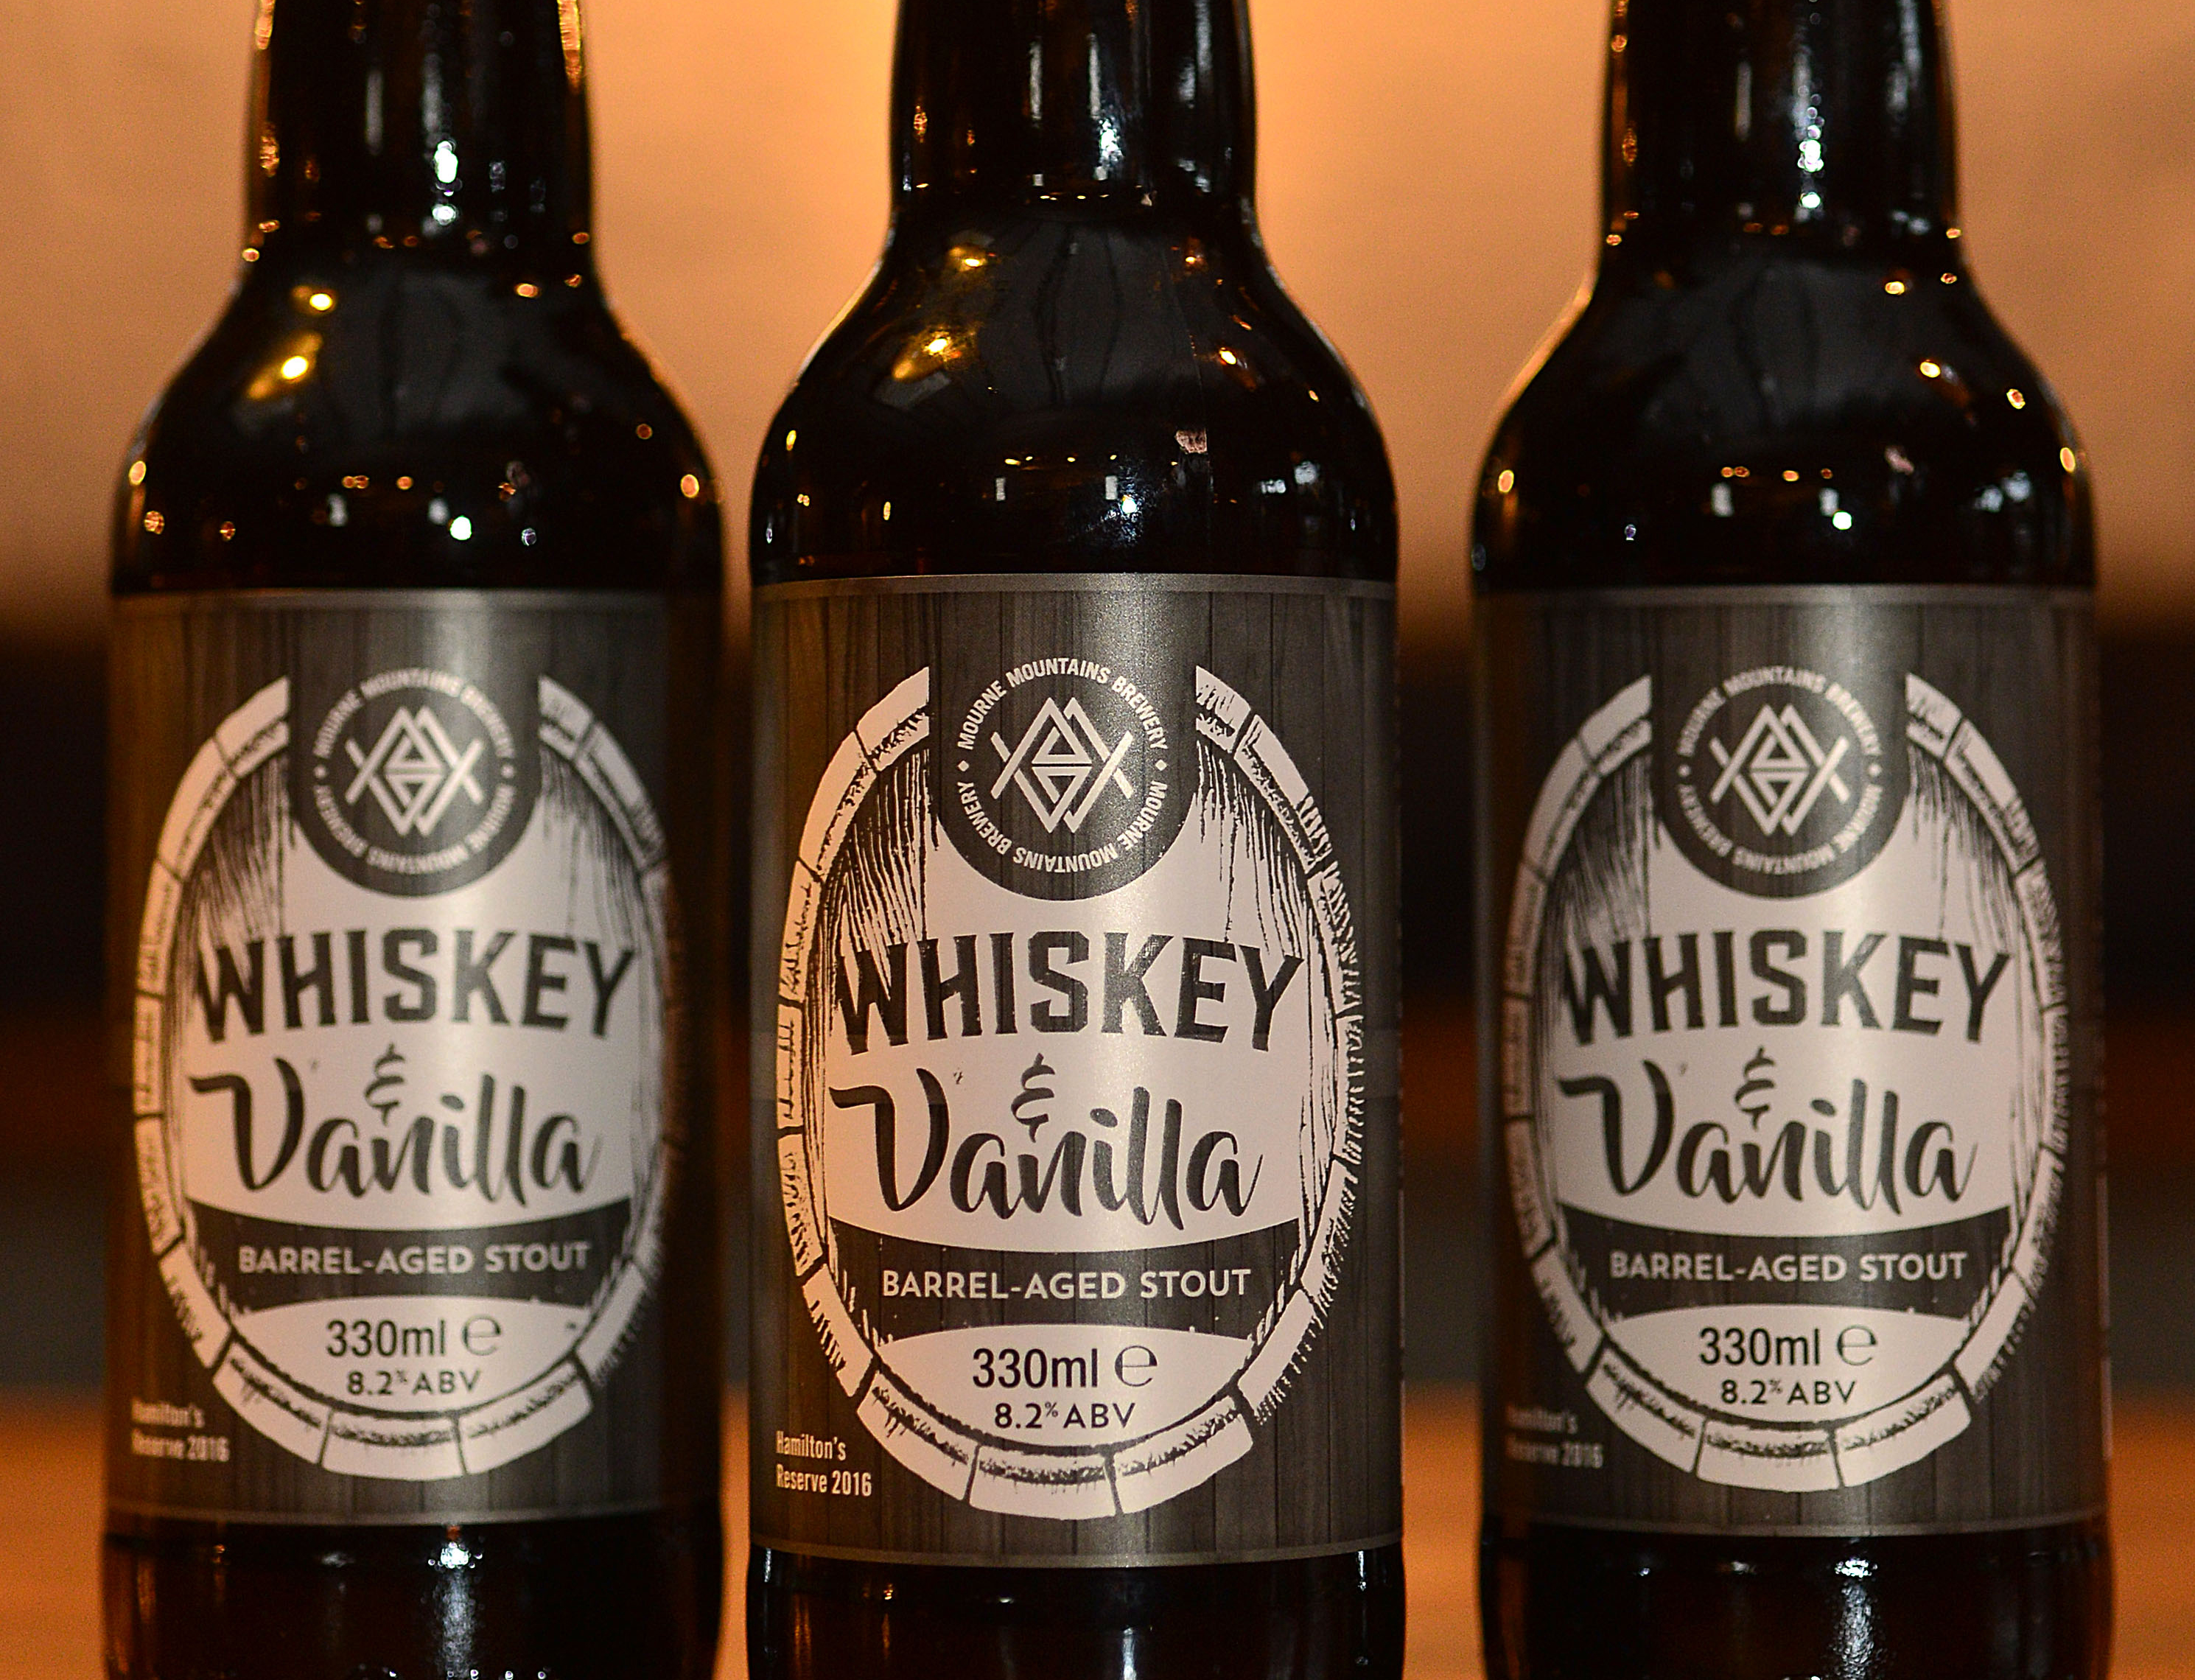 Co. Down brewery launches special whiskey and vanilla barrel-aged stout